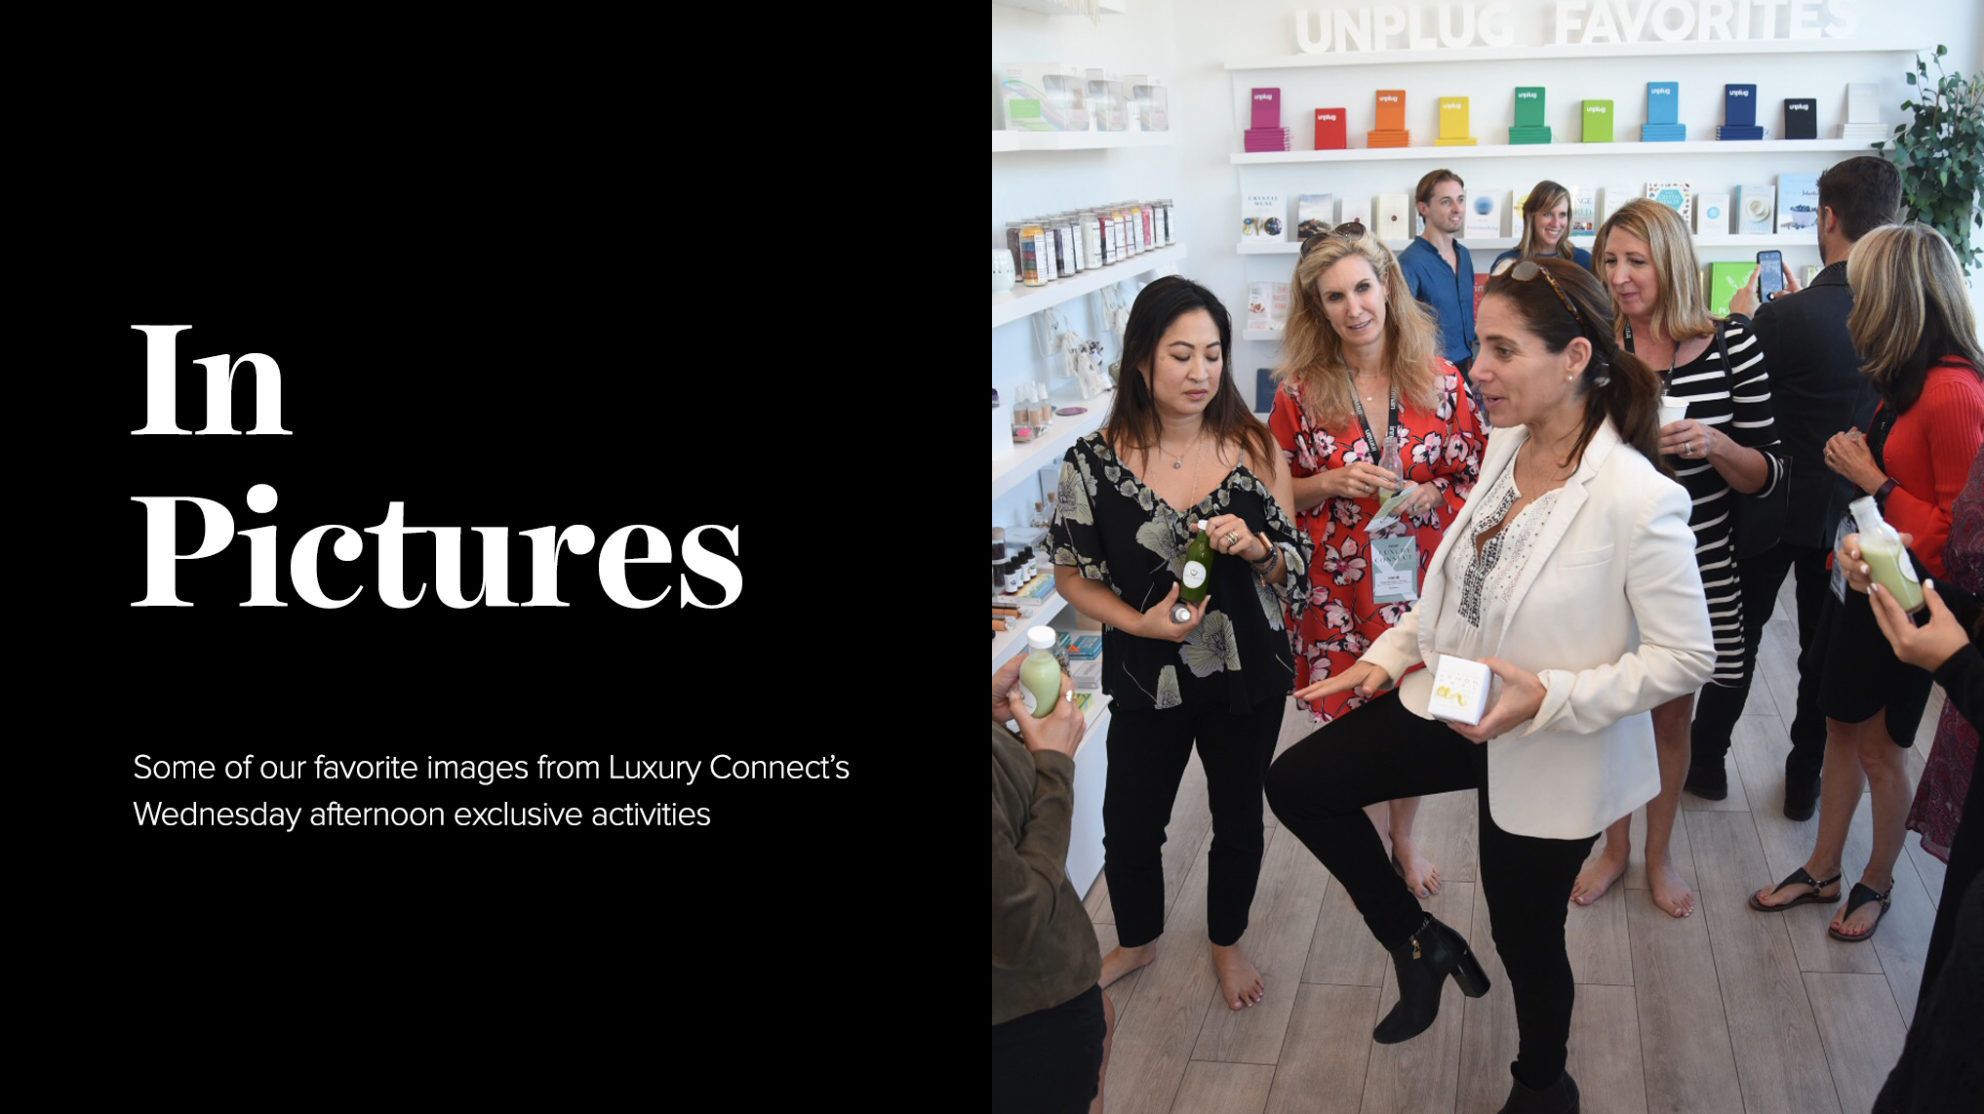 In Pictures: Luxury Connect's exclusive activities